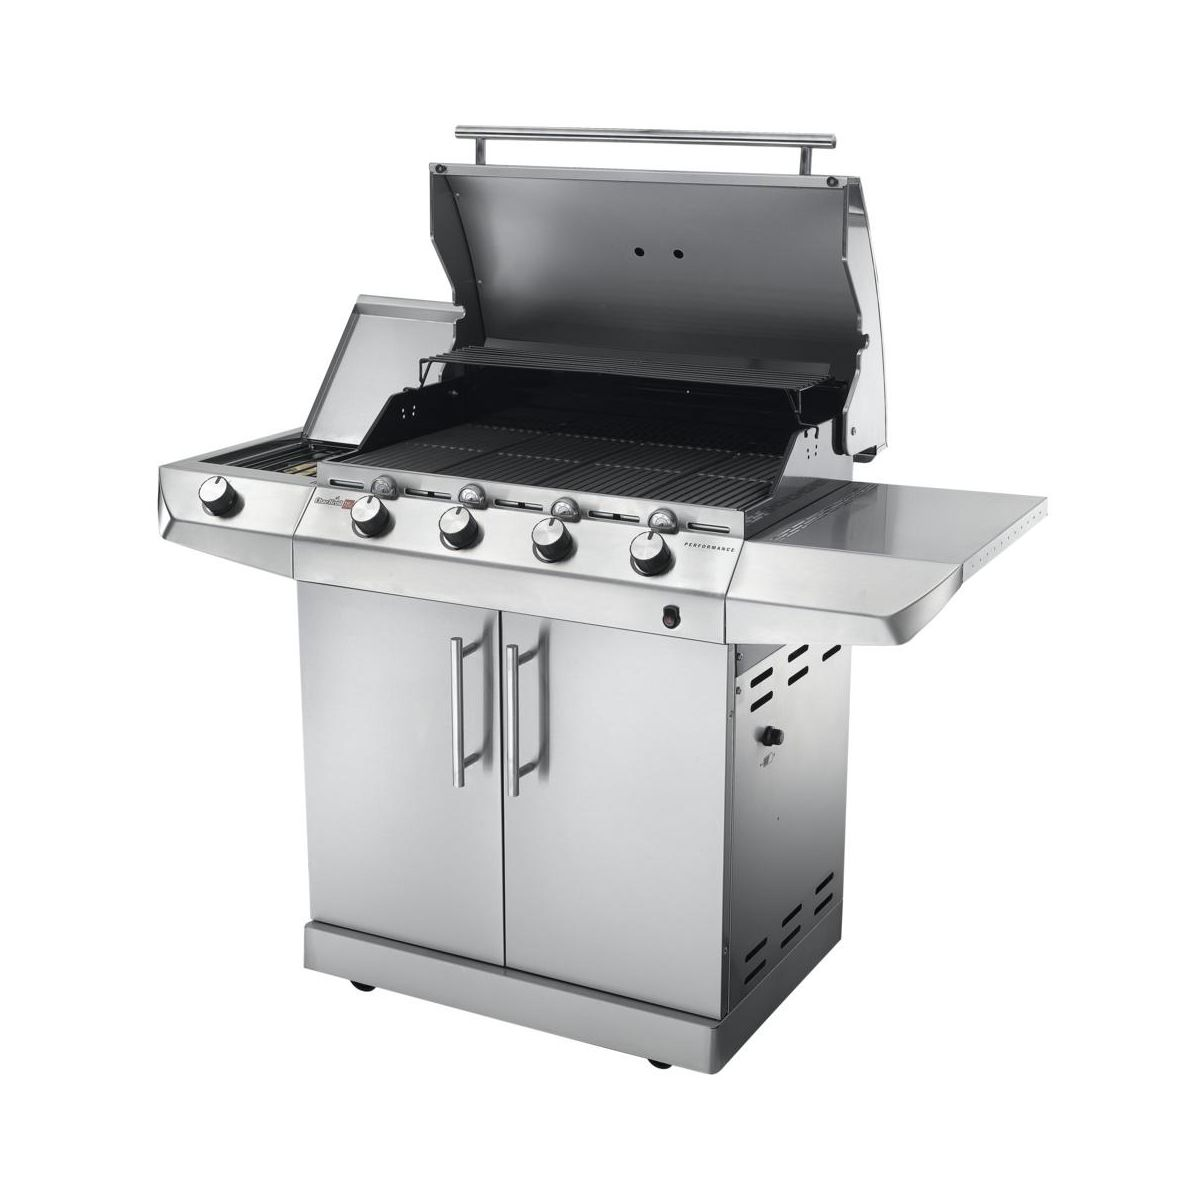 Grill gazowy performance t47 g charbroil sprawd opinie - Grille barbecue leroy merlin ...